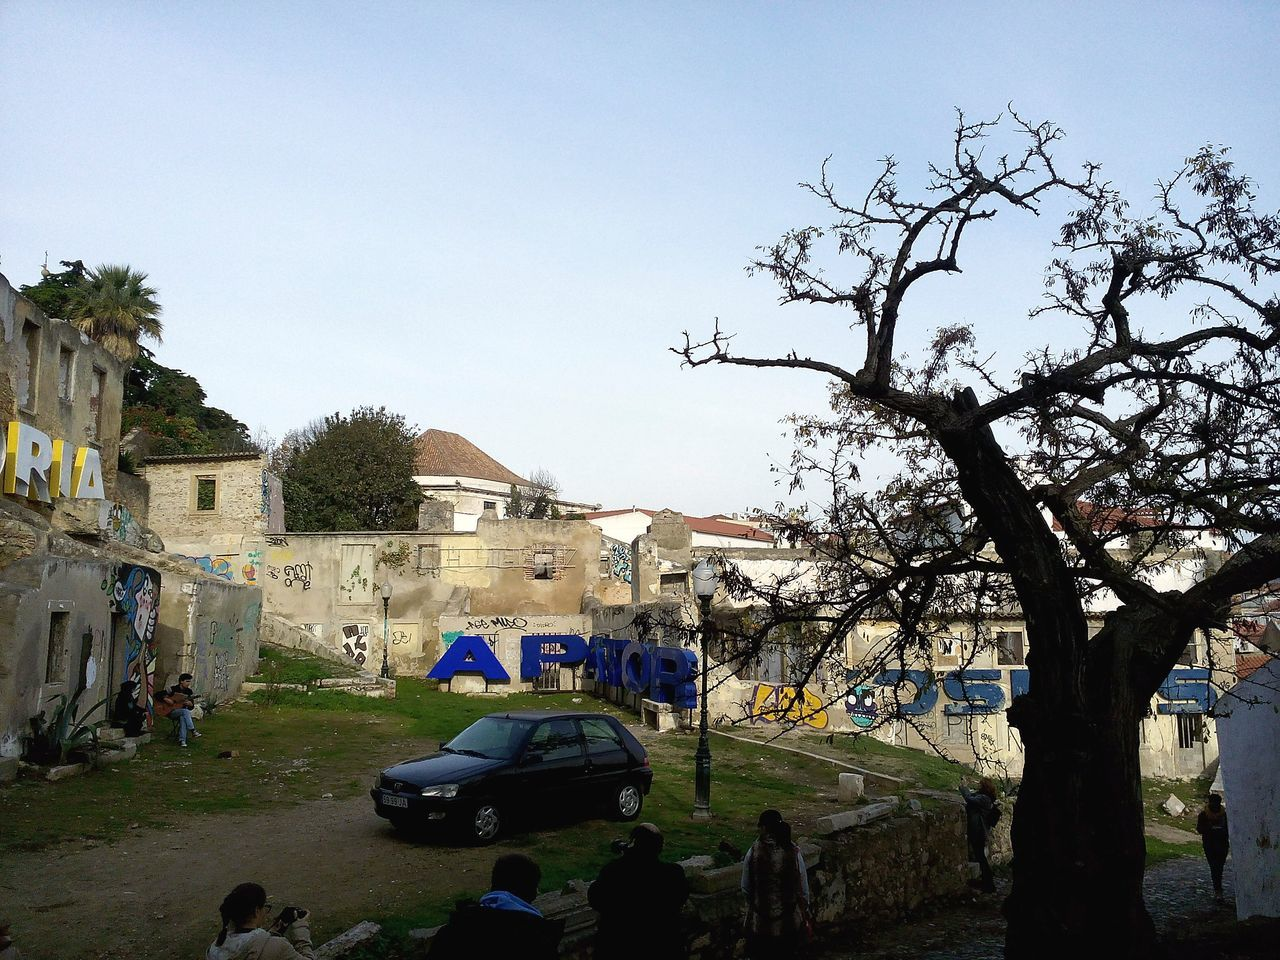 architecture, built structure, tree, building exterior, house, day, outdoors, real people, men, nature, sky, women, clear sky, people